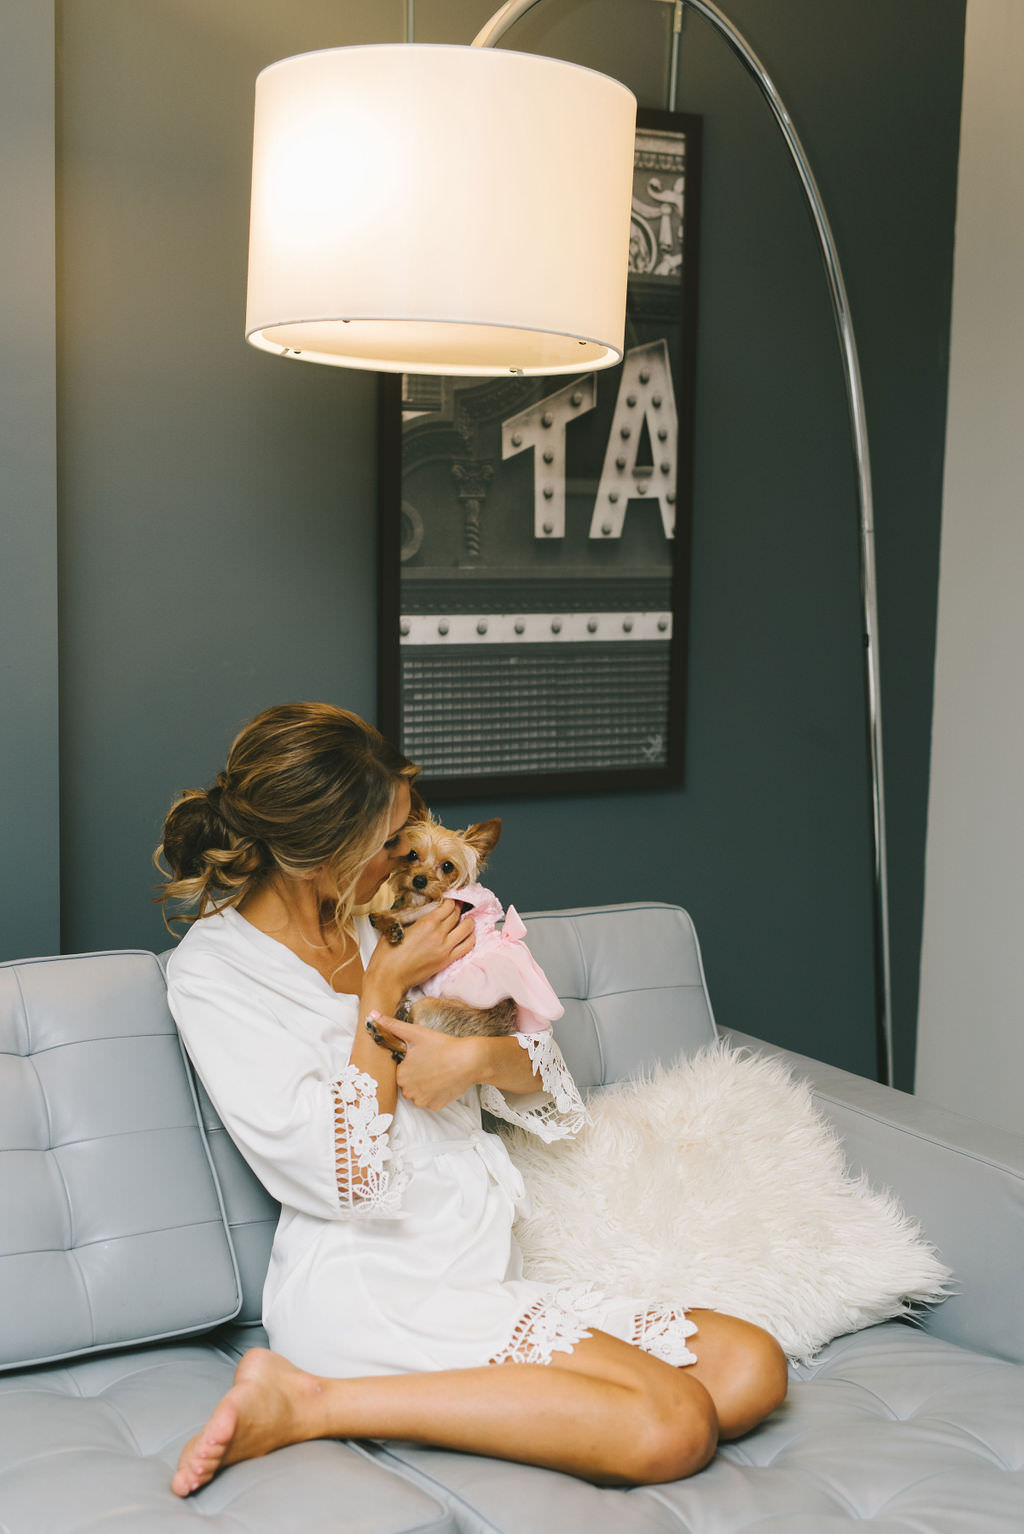 Bride in White Robe with Dog Getting Ready Wedding Portrait   Tampa Wedding Photographer Kera Photography